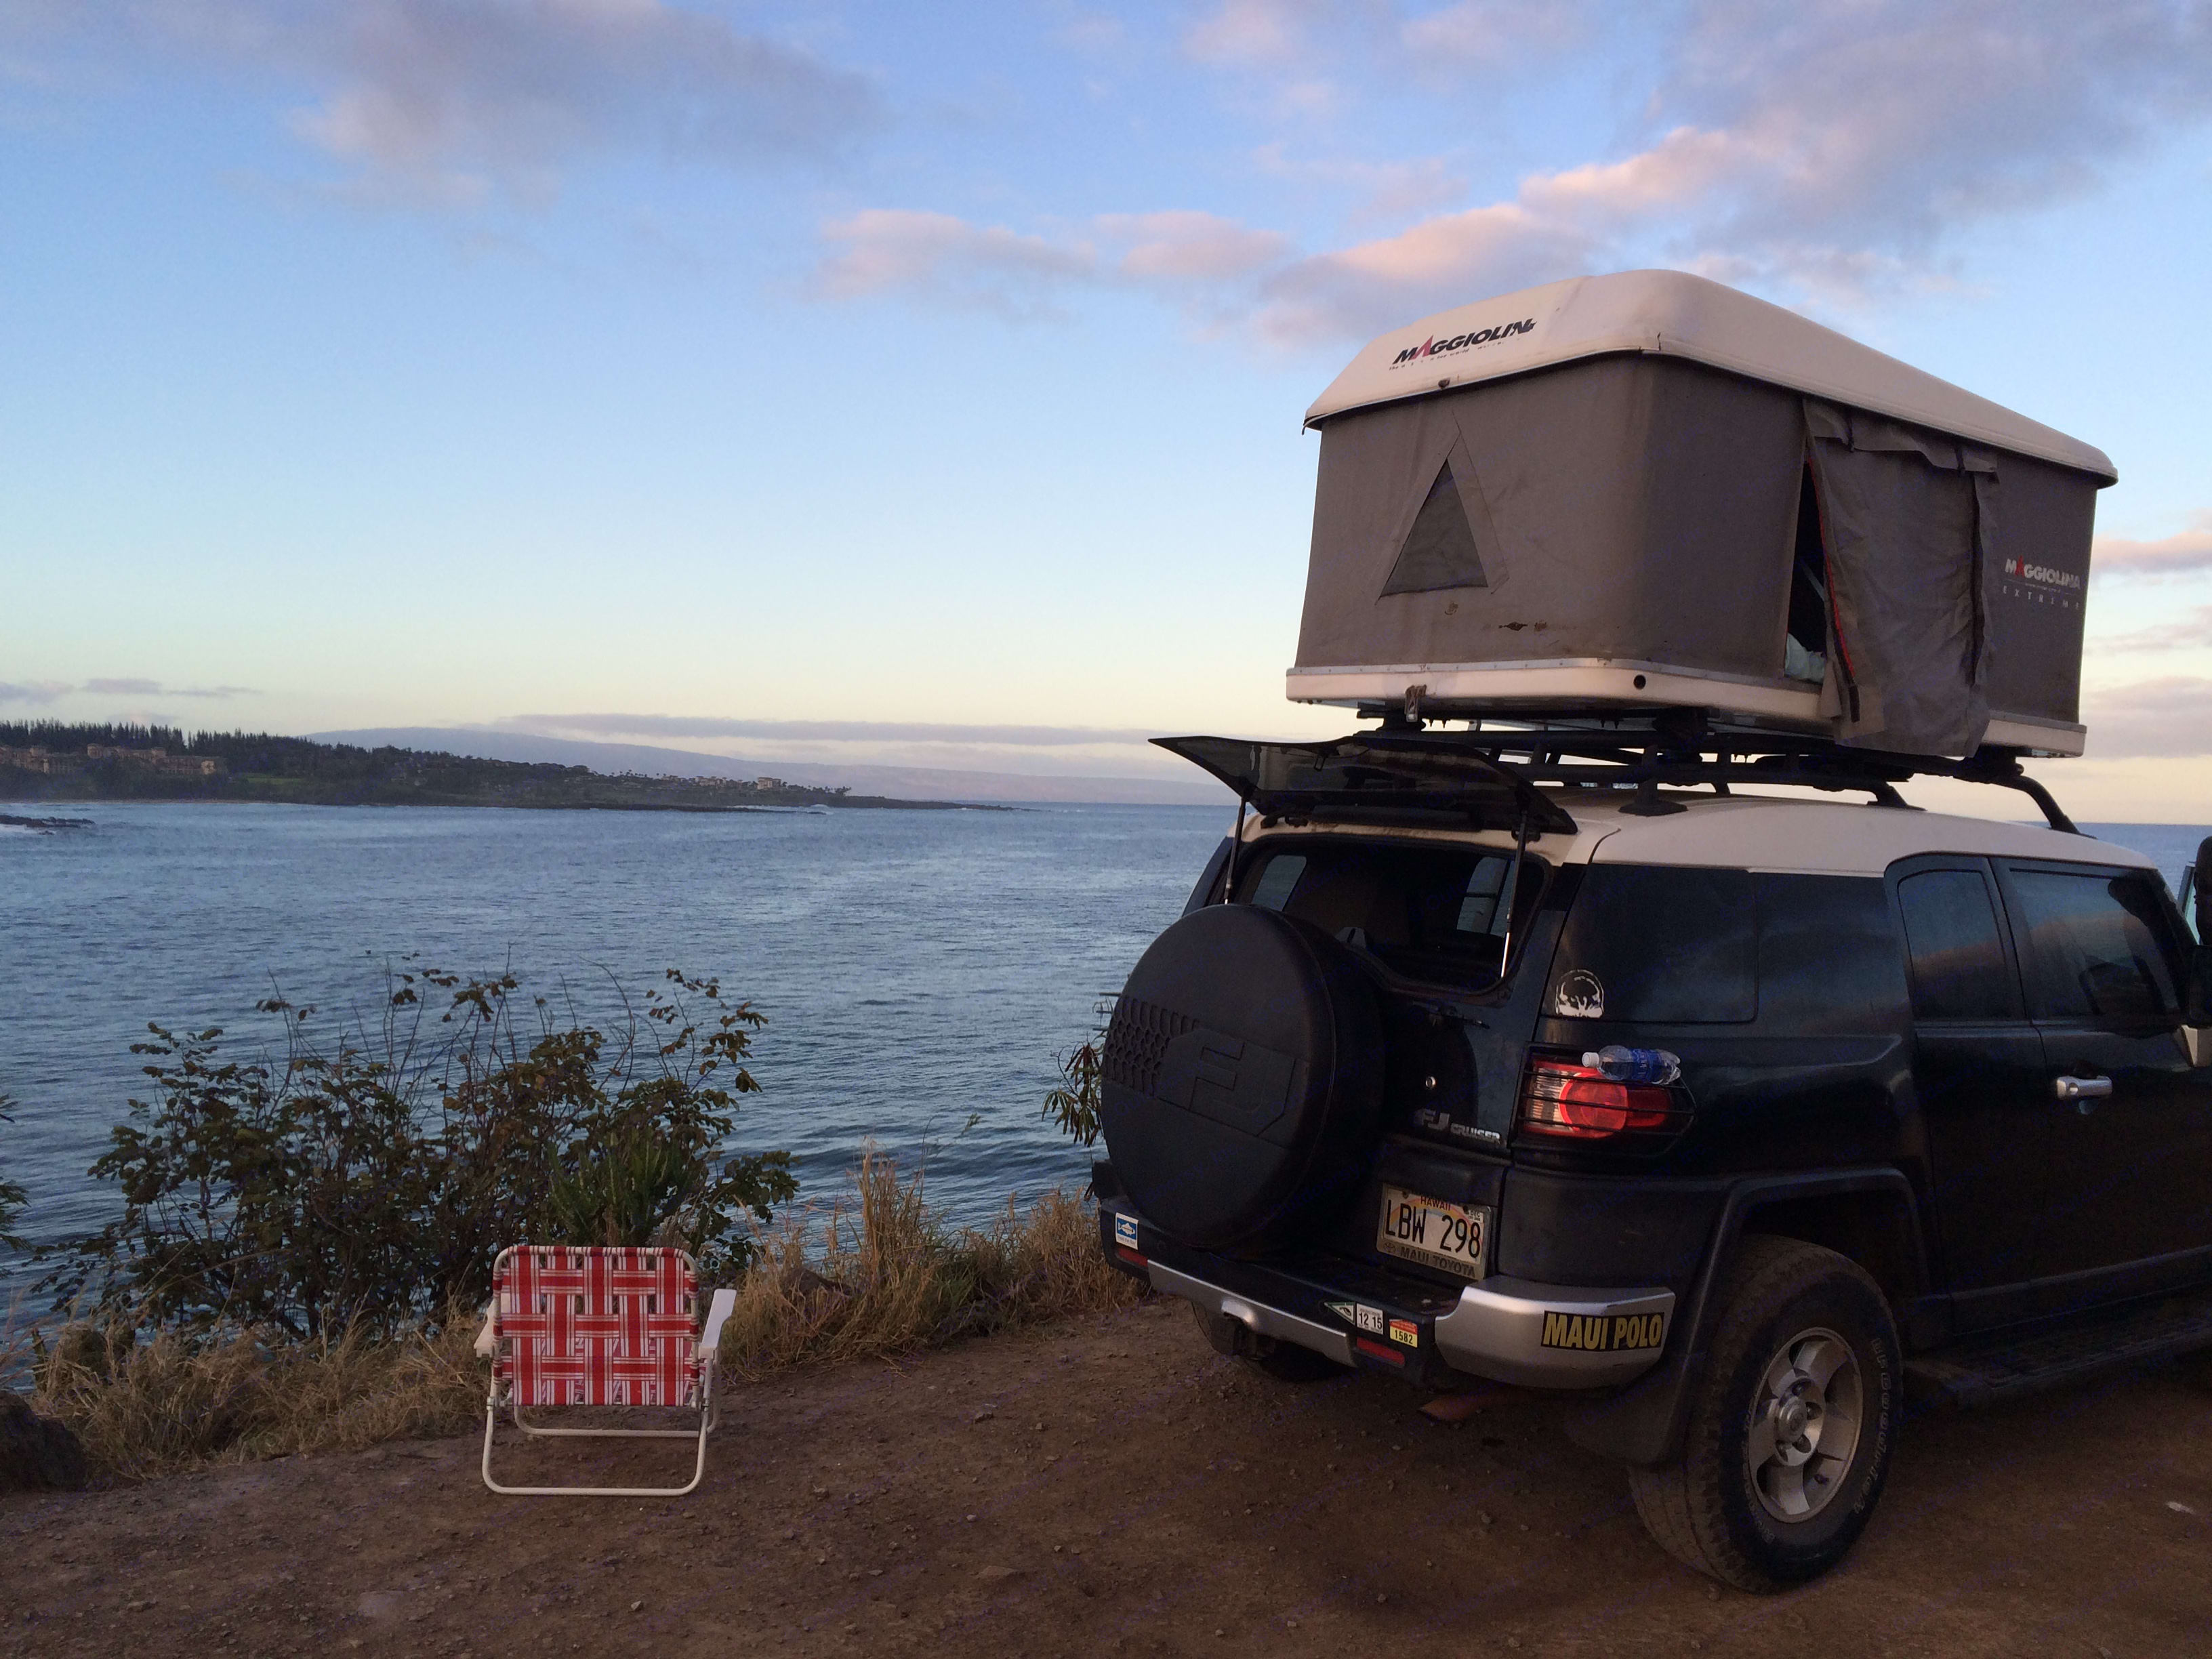 Easy to store surfboard and travel gear.  Room top is solid quality for all weather and easy to pop up, you don't need even surface to swing a tent to be secure, this tent pops up vertical. Toyota FJ Cruiser 2008